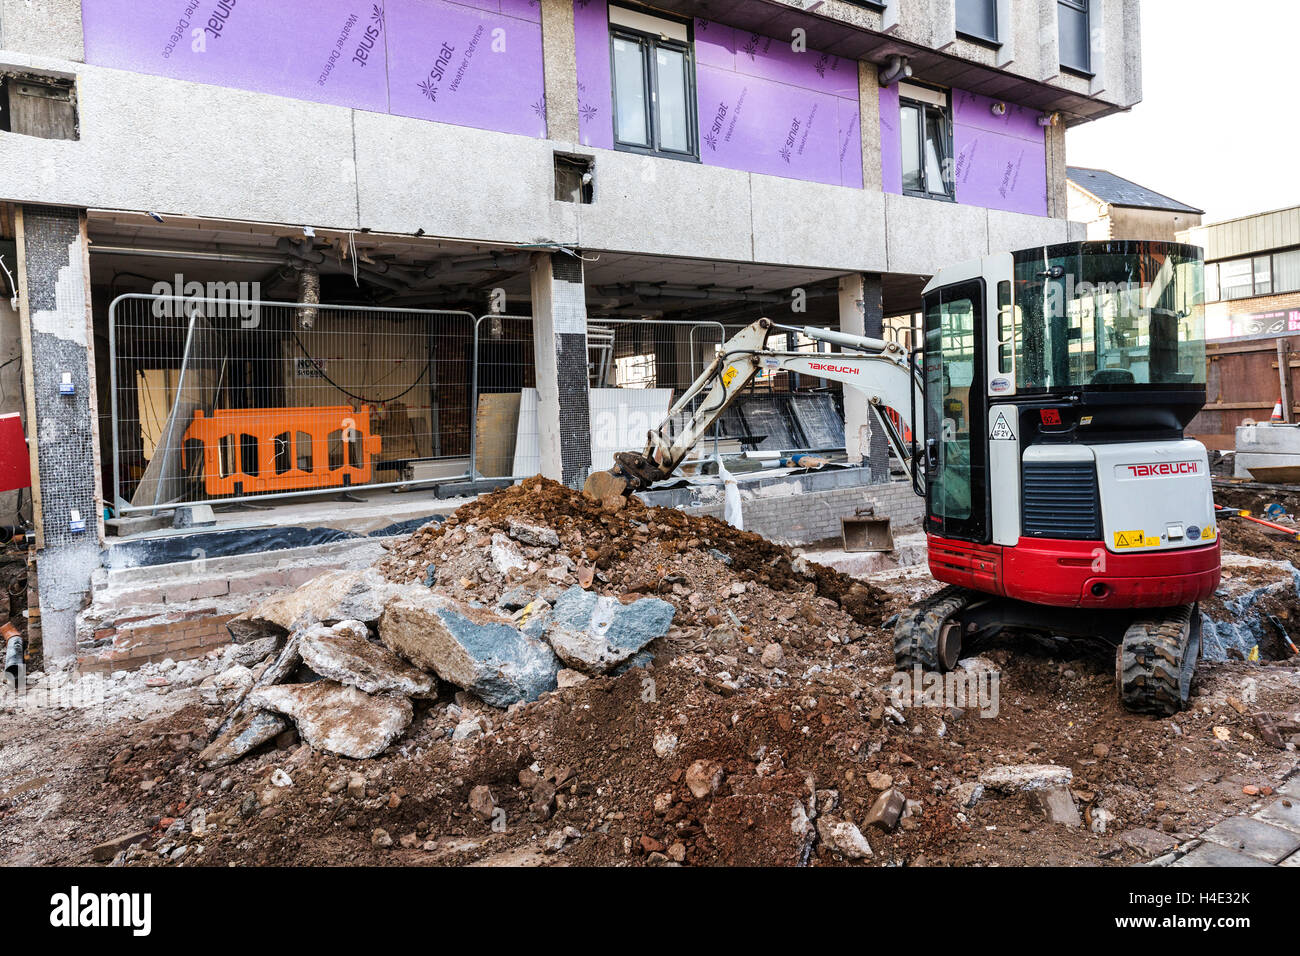 Digger and pavement being dug up during building renovations, Cardiff, UK - Stock Image